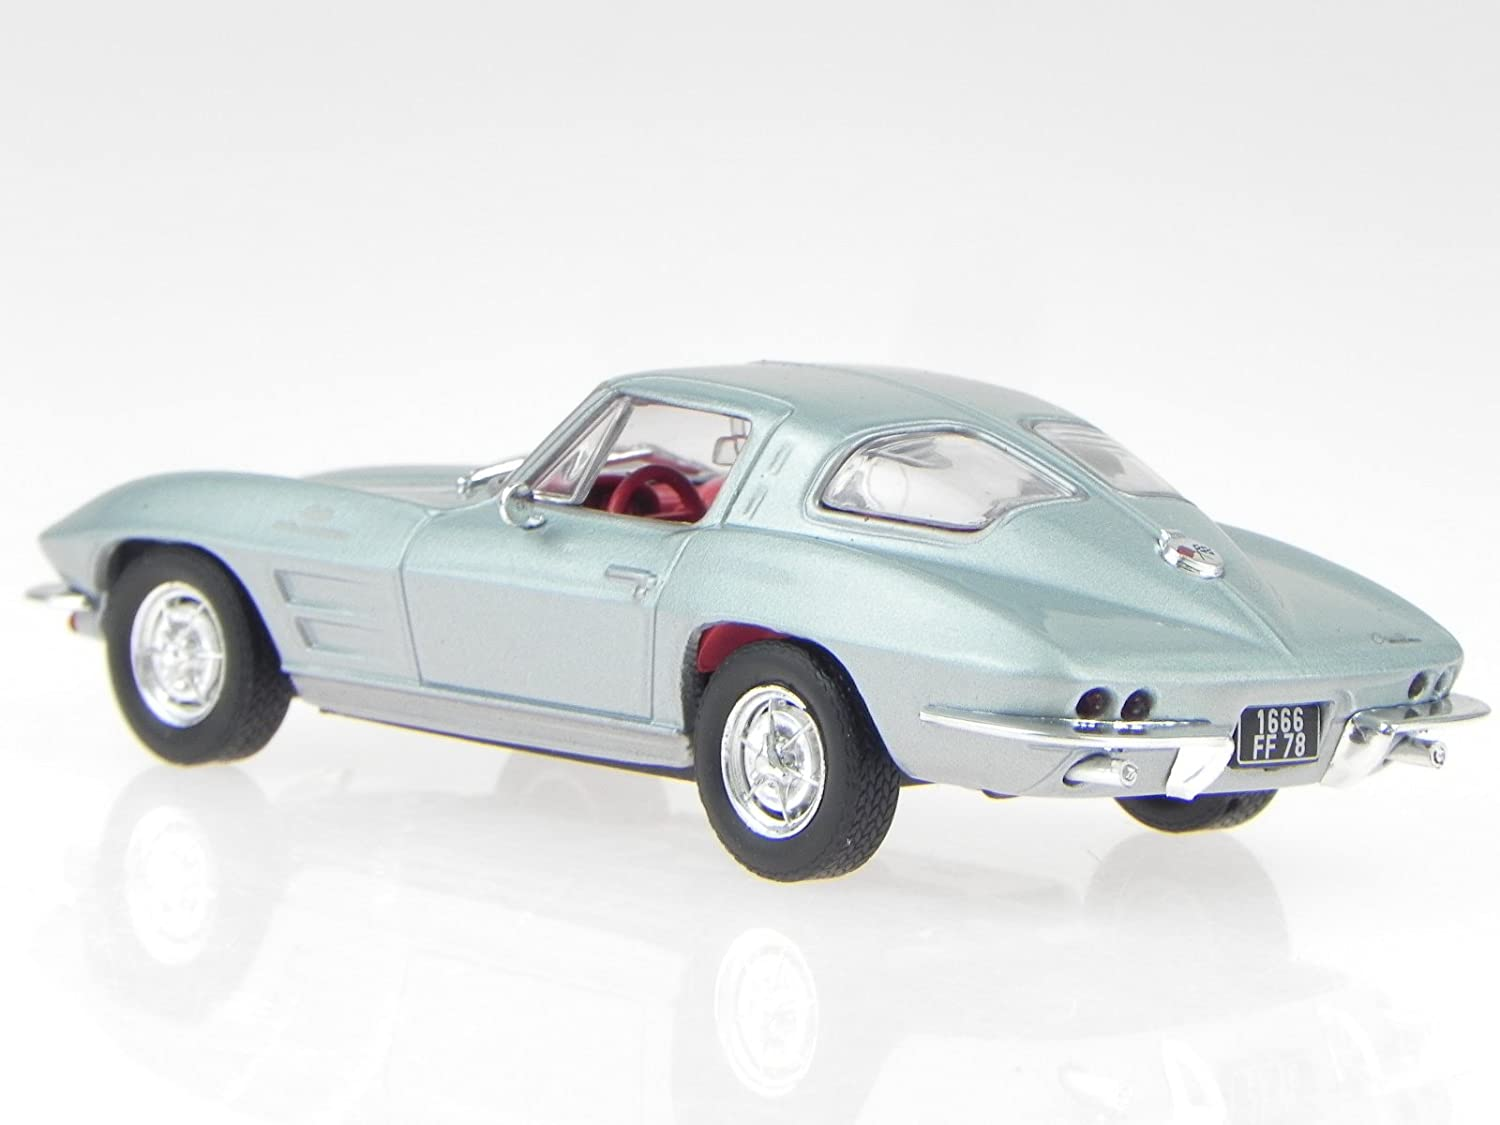 Chevrolet Corvette C2 Stingray 1963 silver modelcar Solido 1:43